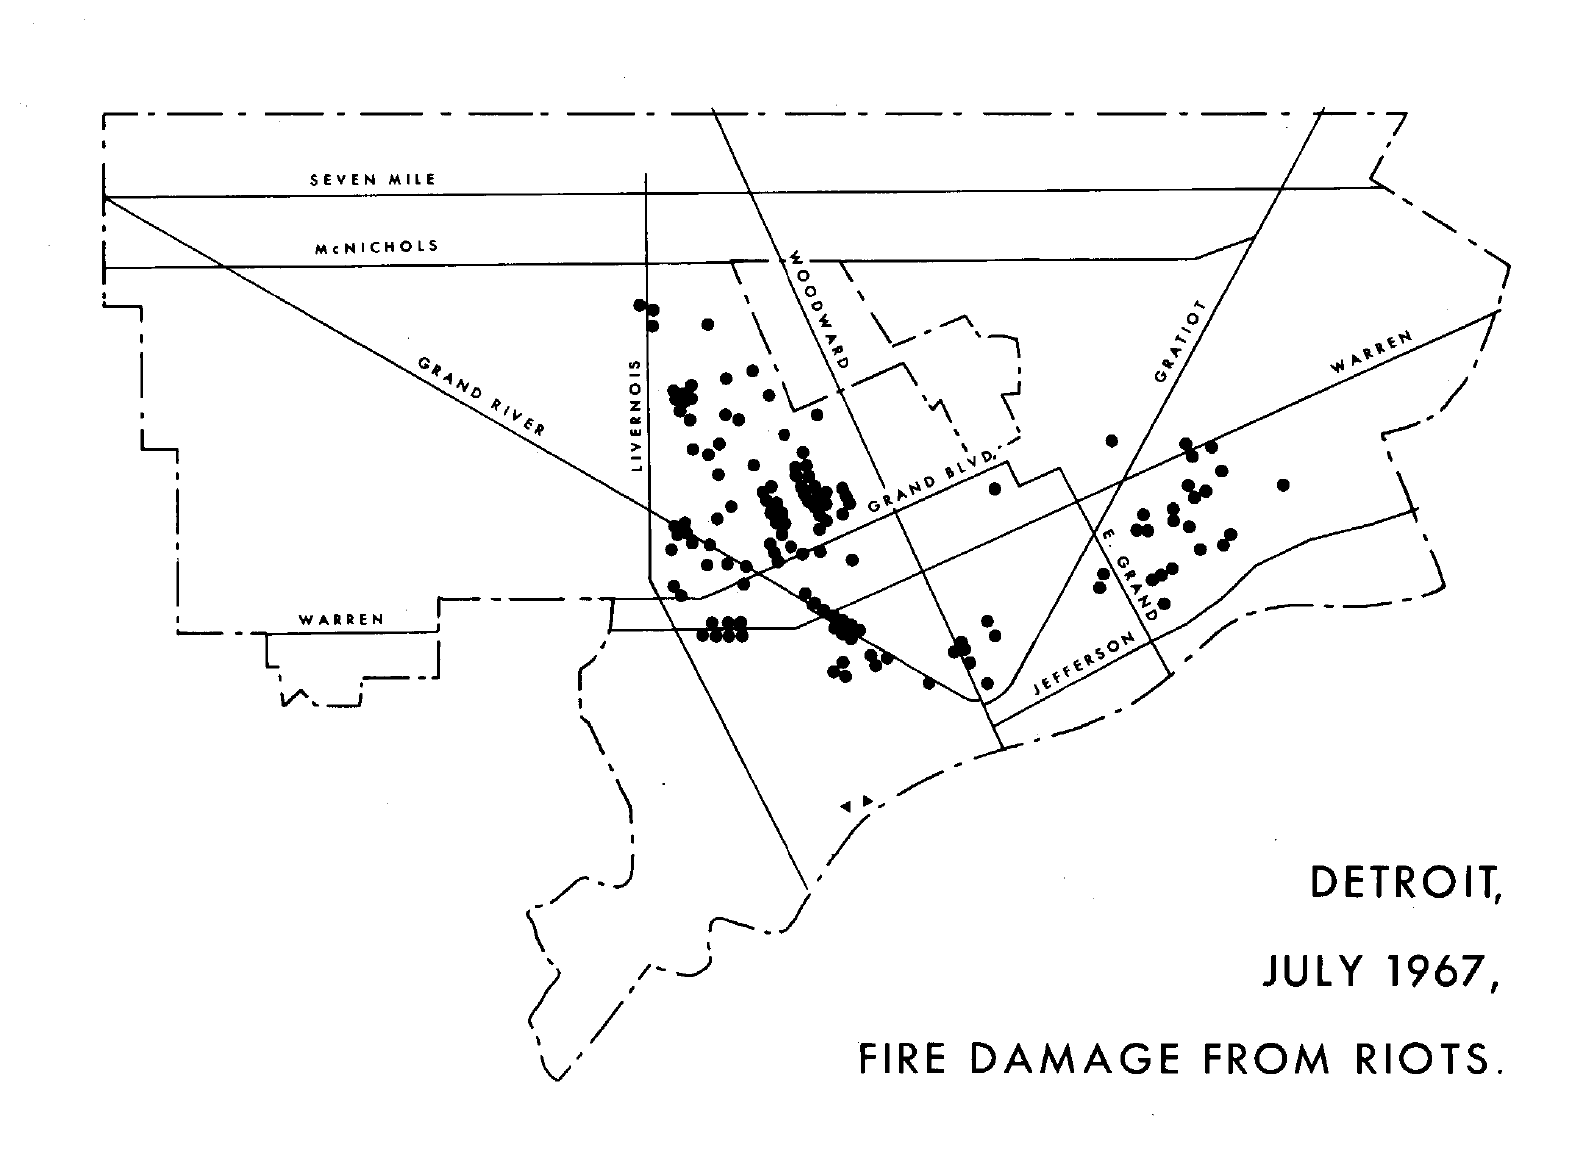 Map Of Detroit Riots Fire Damage 1967  DETROITography